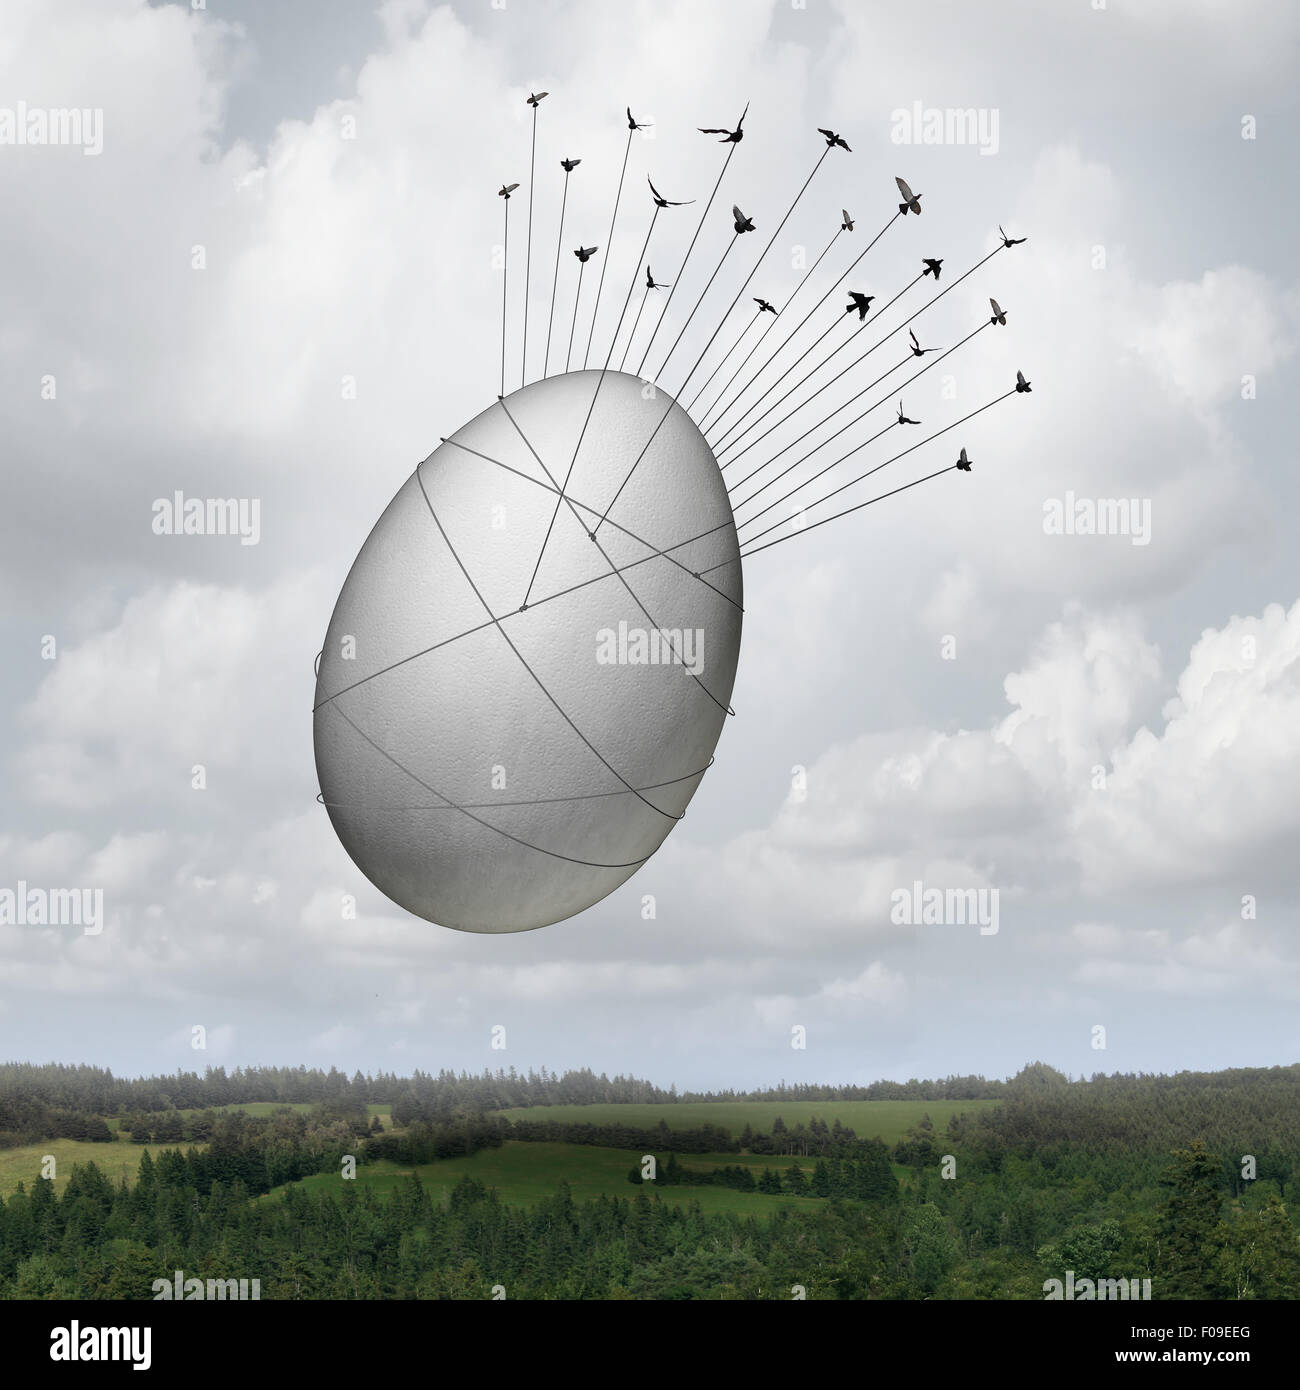 Common goal business concept as a collective team of birds pulling a giant egg with ropes as a financial security - Stock Image